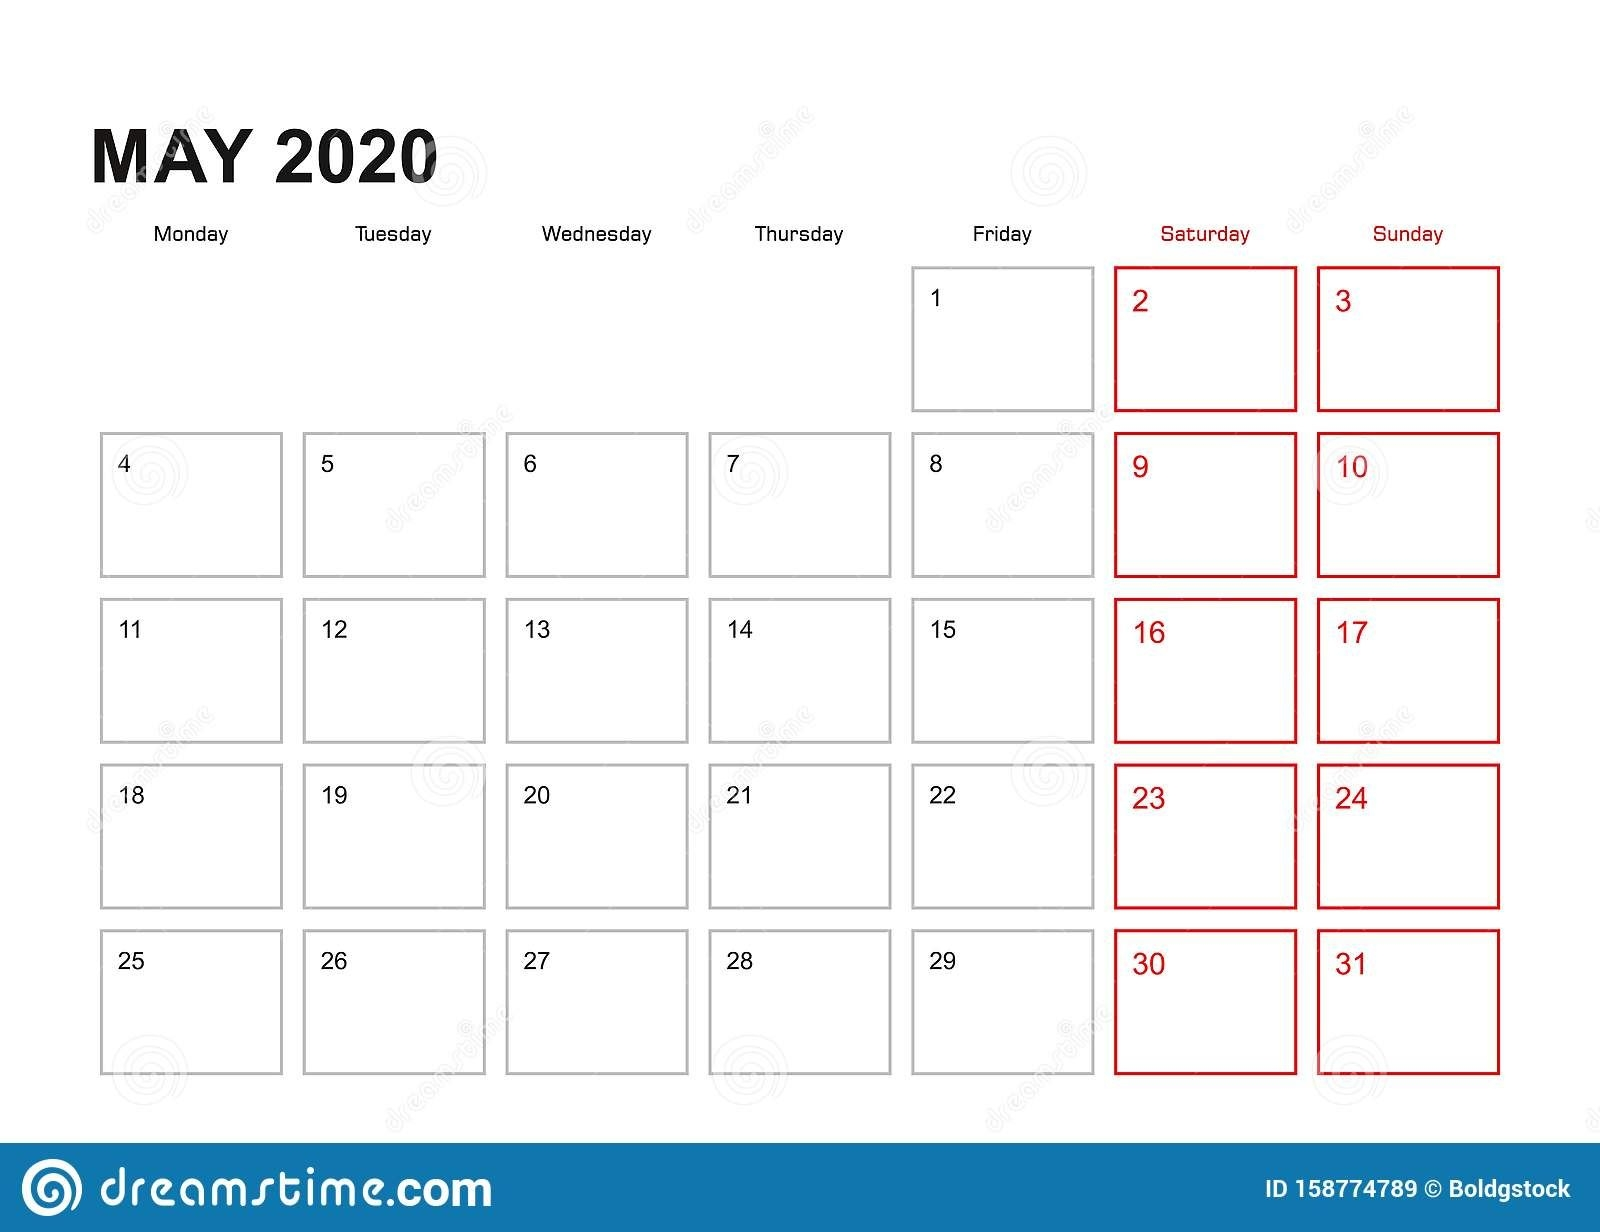 Wall Planner For May 2020 In English Language, Week Starts